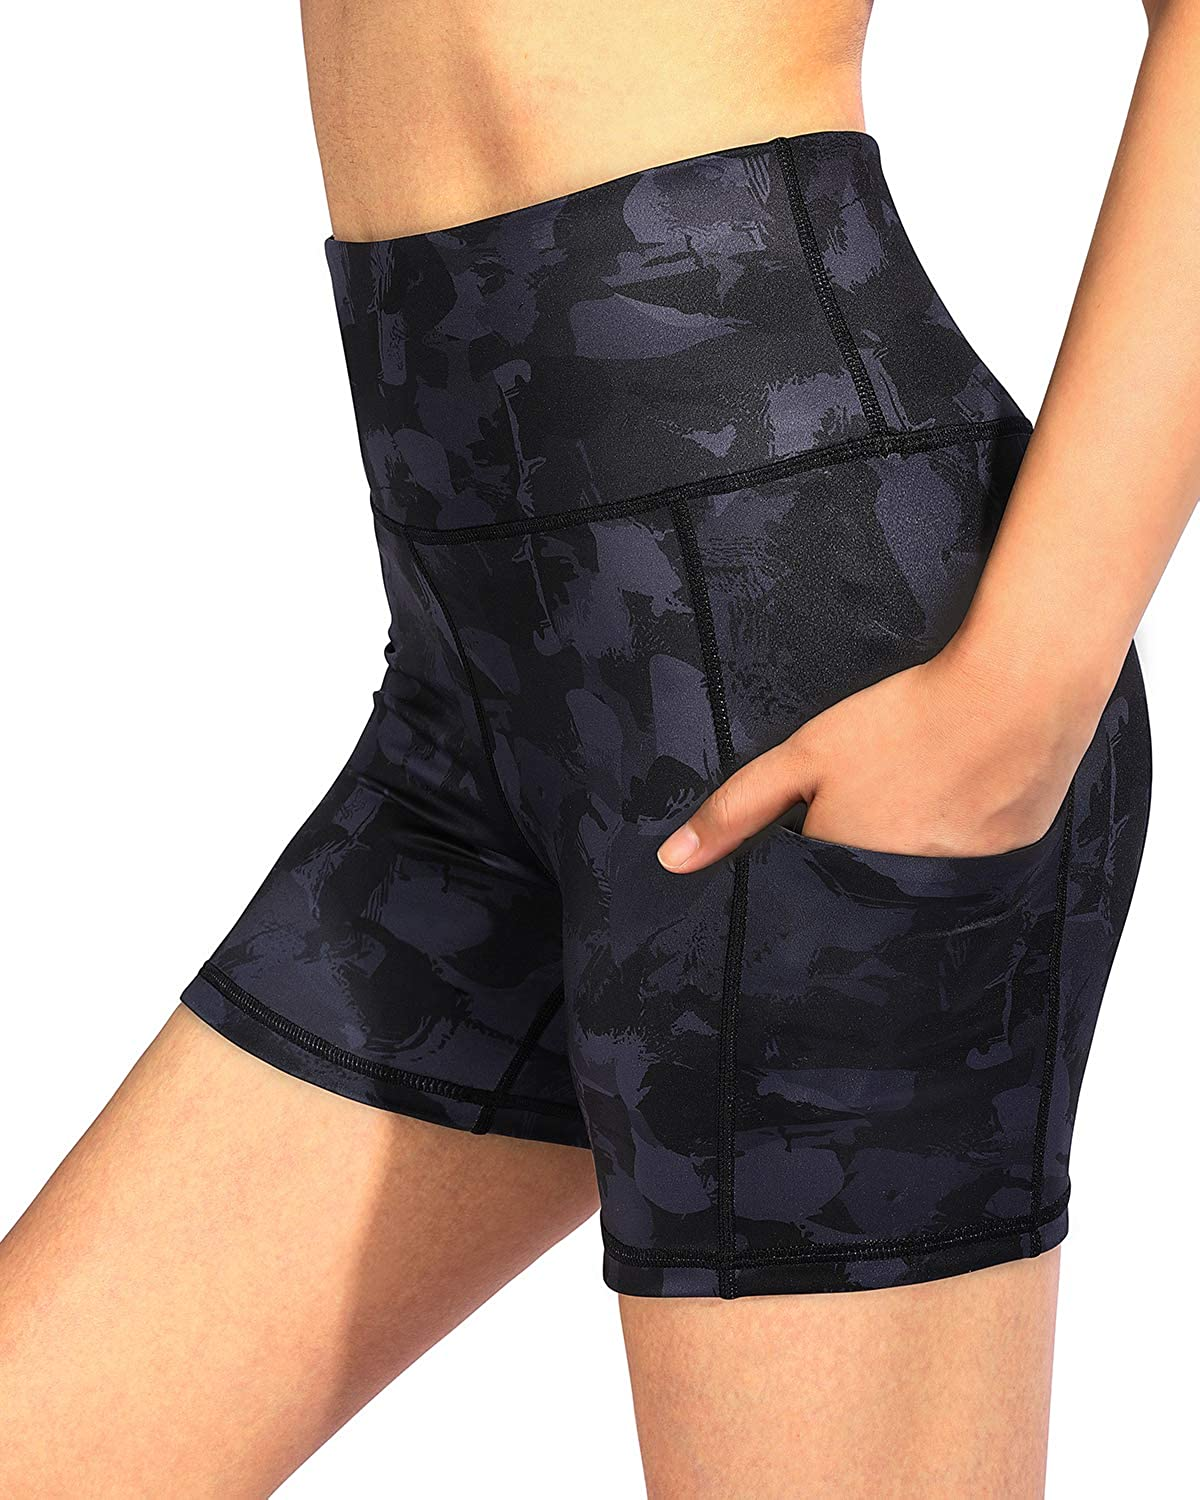 G4Free High Waist Yoga Shorts with Pockets Workout Biker Shorts for Women Non See-Through Exercise Running Short Legging